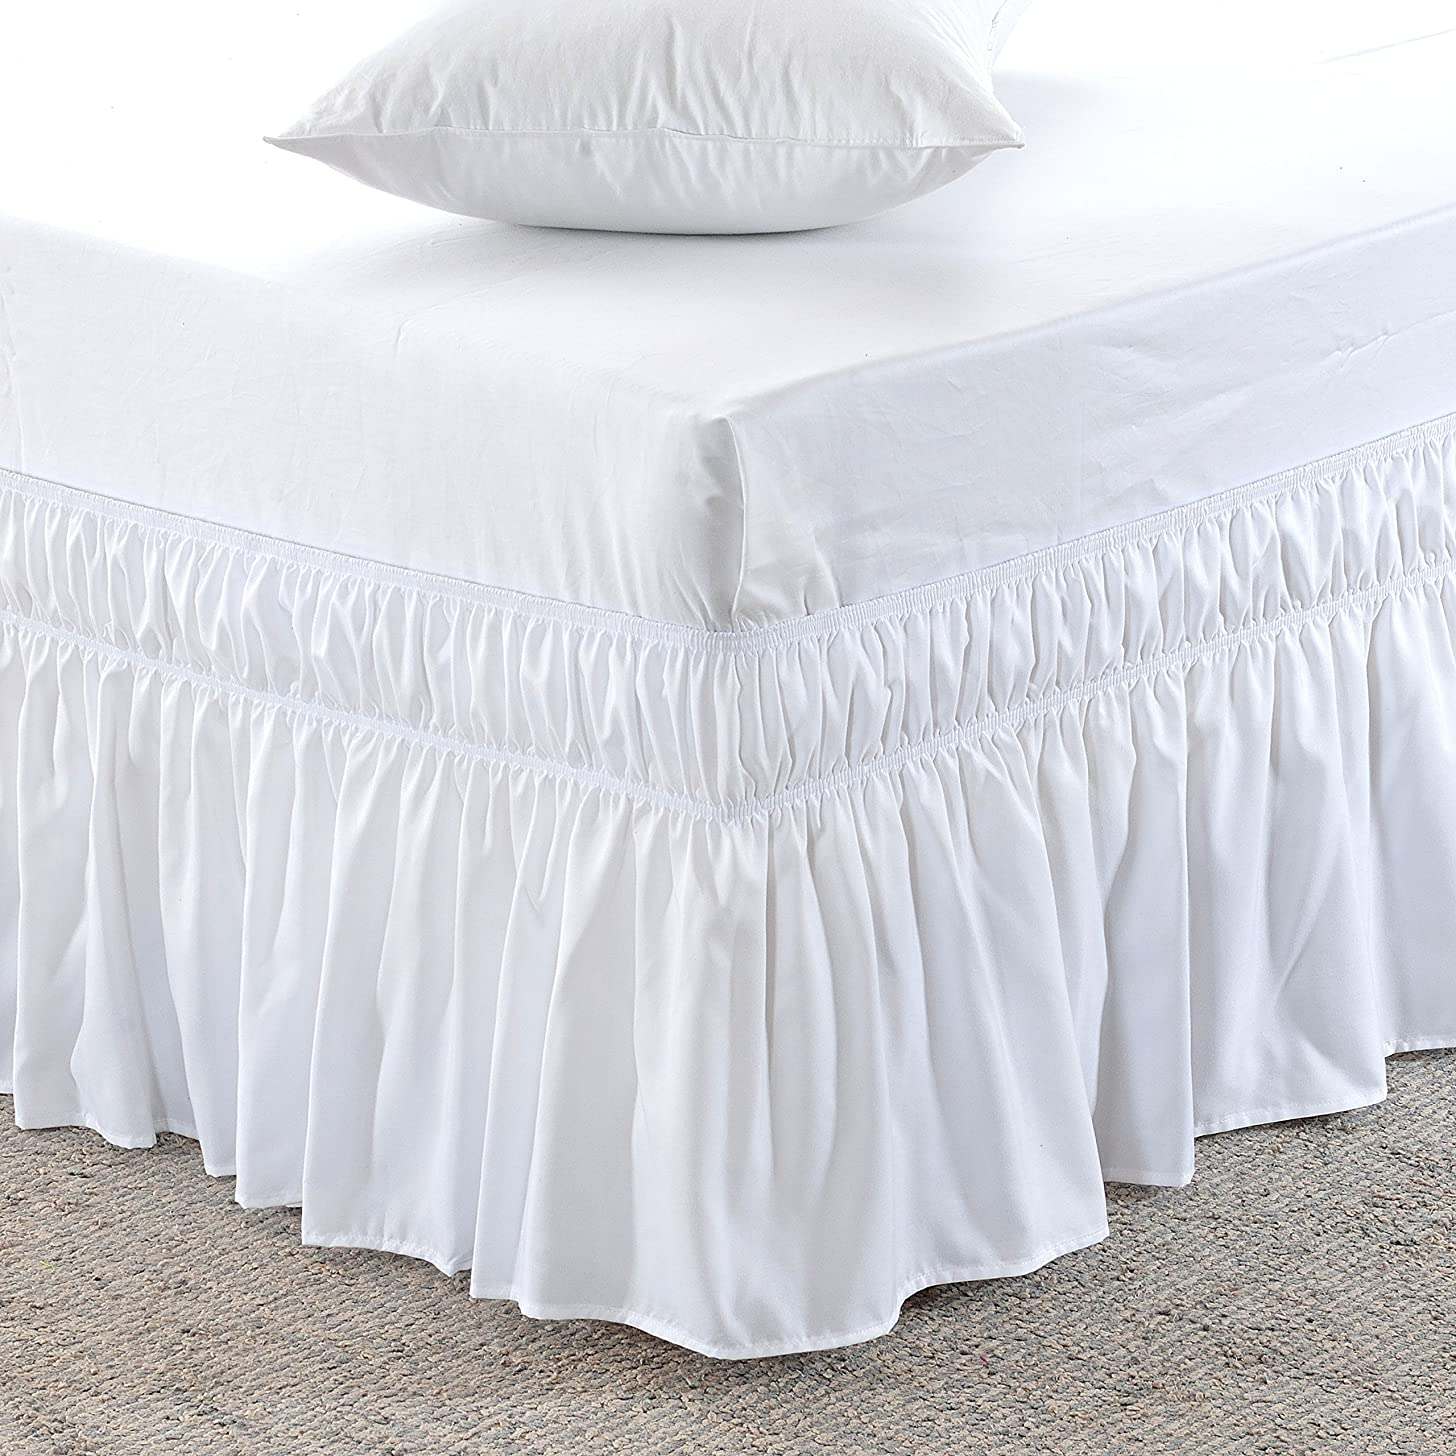 MEILA Three Fabric Sides Wrap Around Elastic Solid Bed Skirt, Easy On/Easy Off Dust Ruffled Bed Skirts 16 Inch Tailored Drop (White Twin/Full)